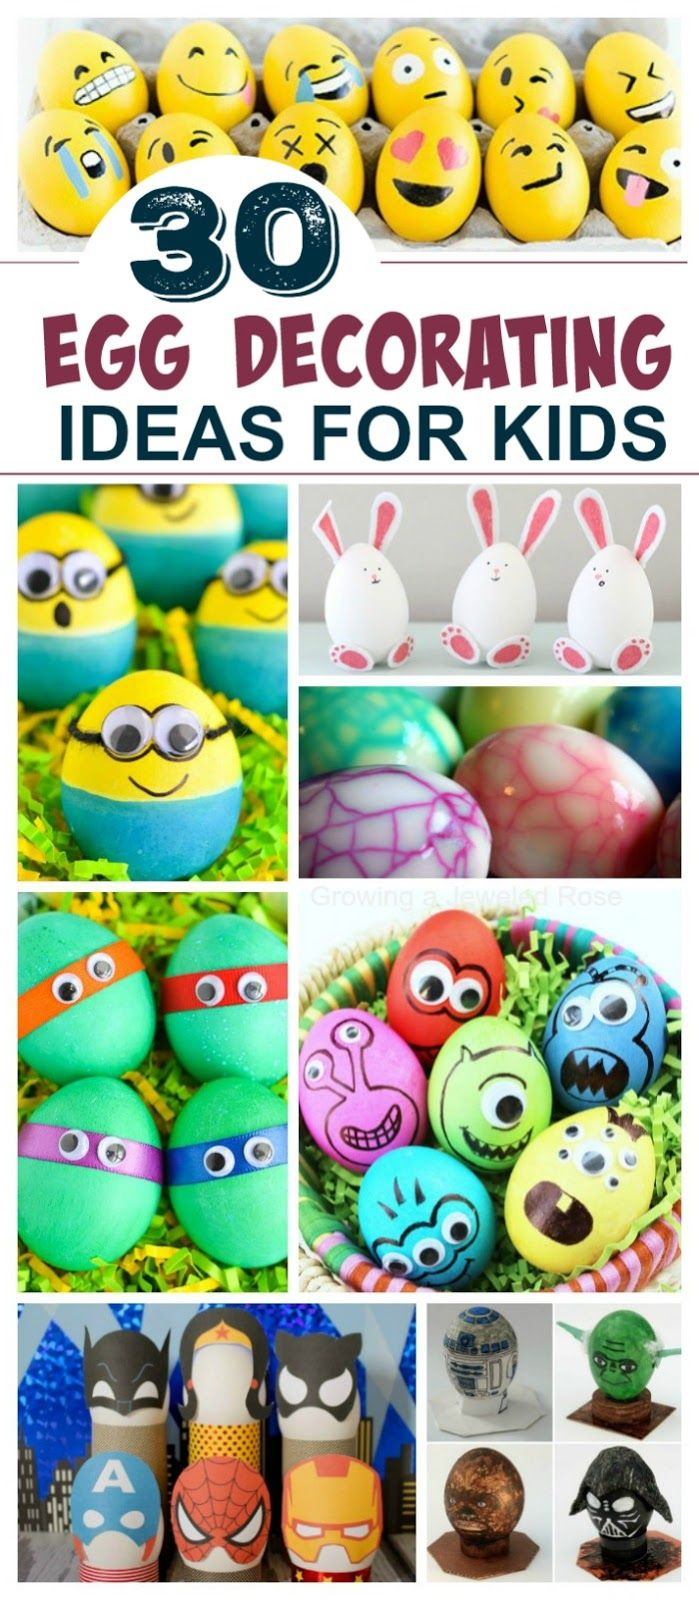 30 AWESOME ways to dye & decorate Easter eggs with kids- so many fun ideas! I can't wait to try the erupting egg dying! My kids are going to love these!!!